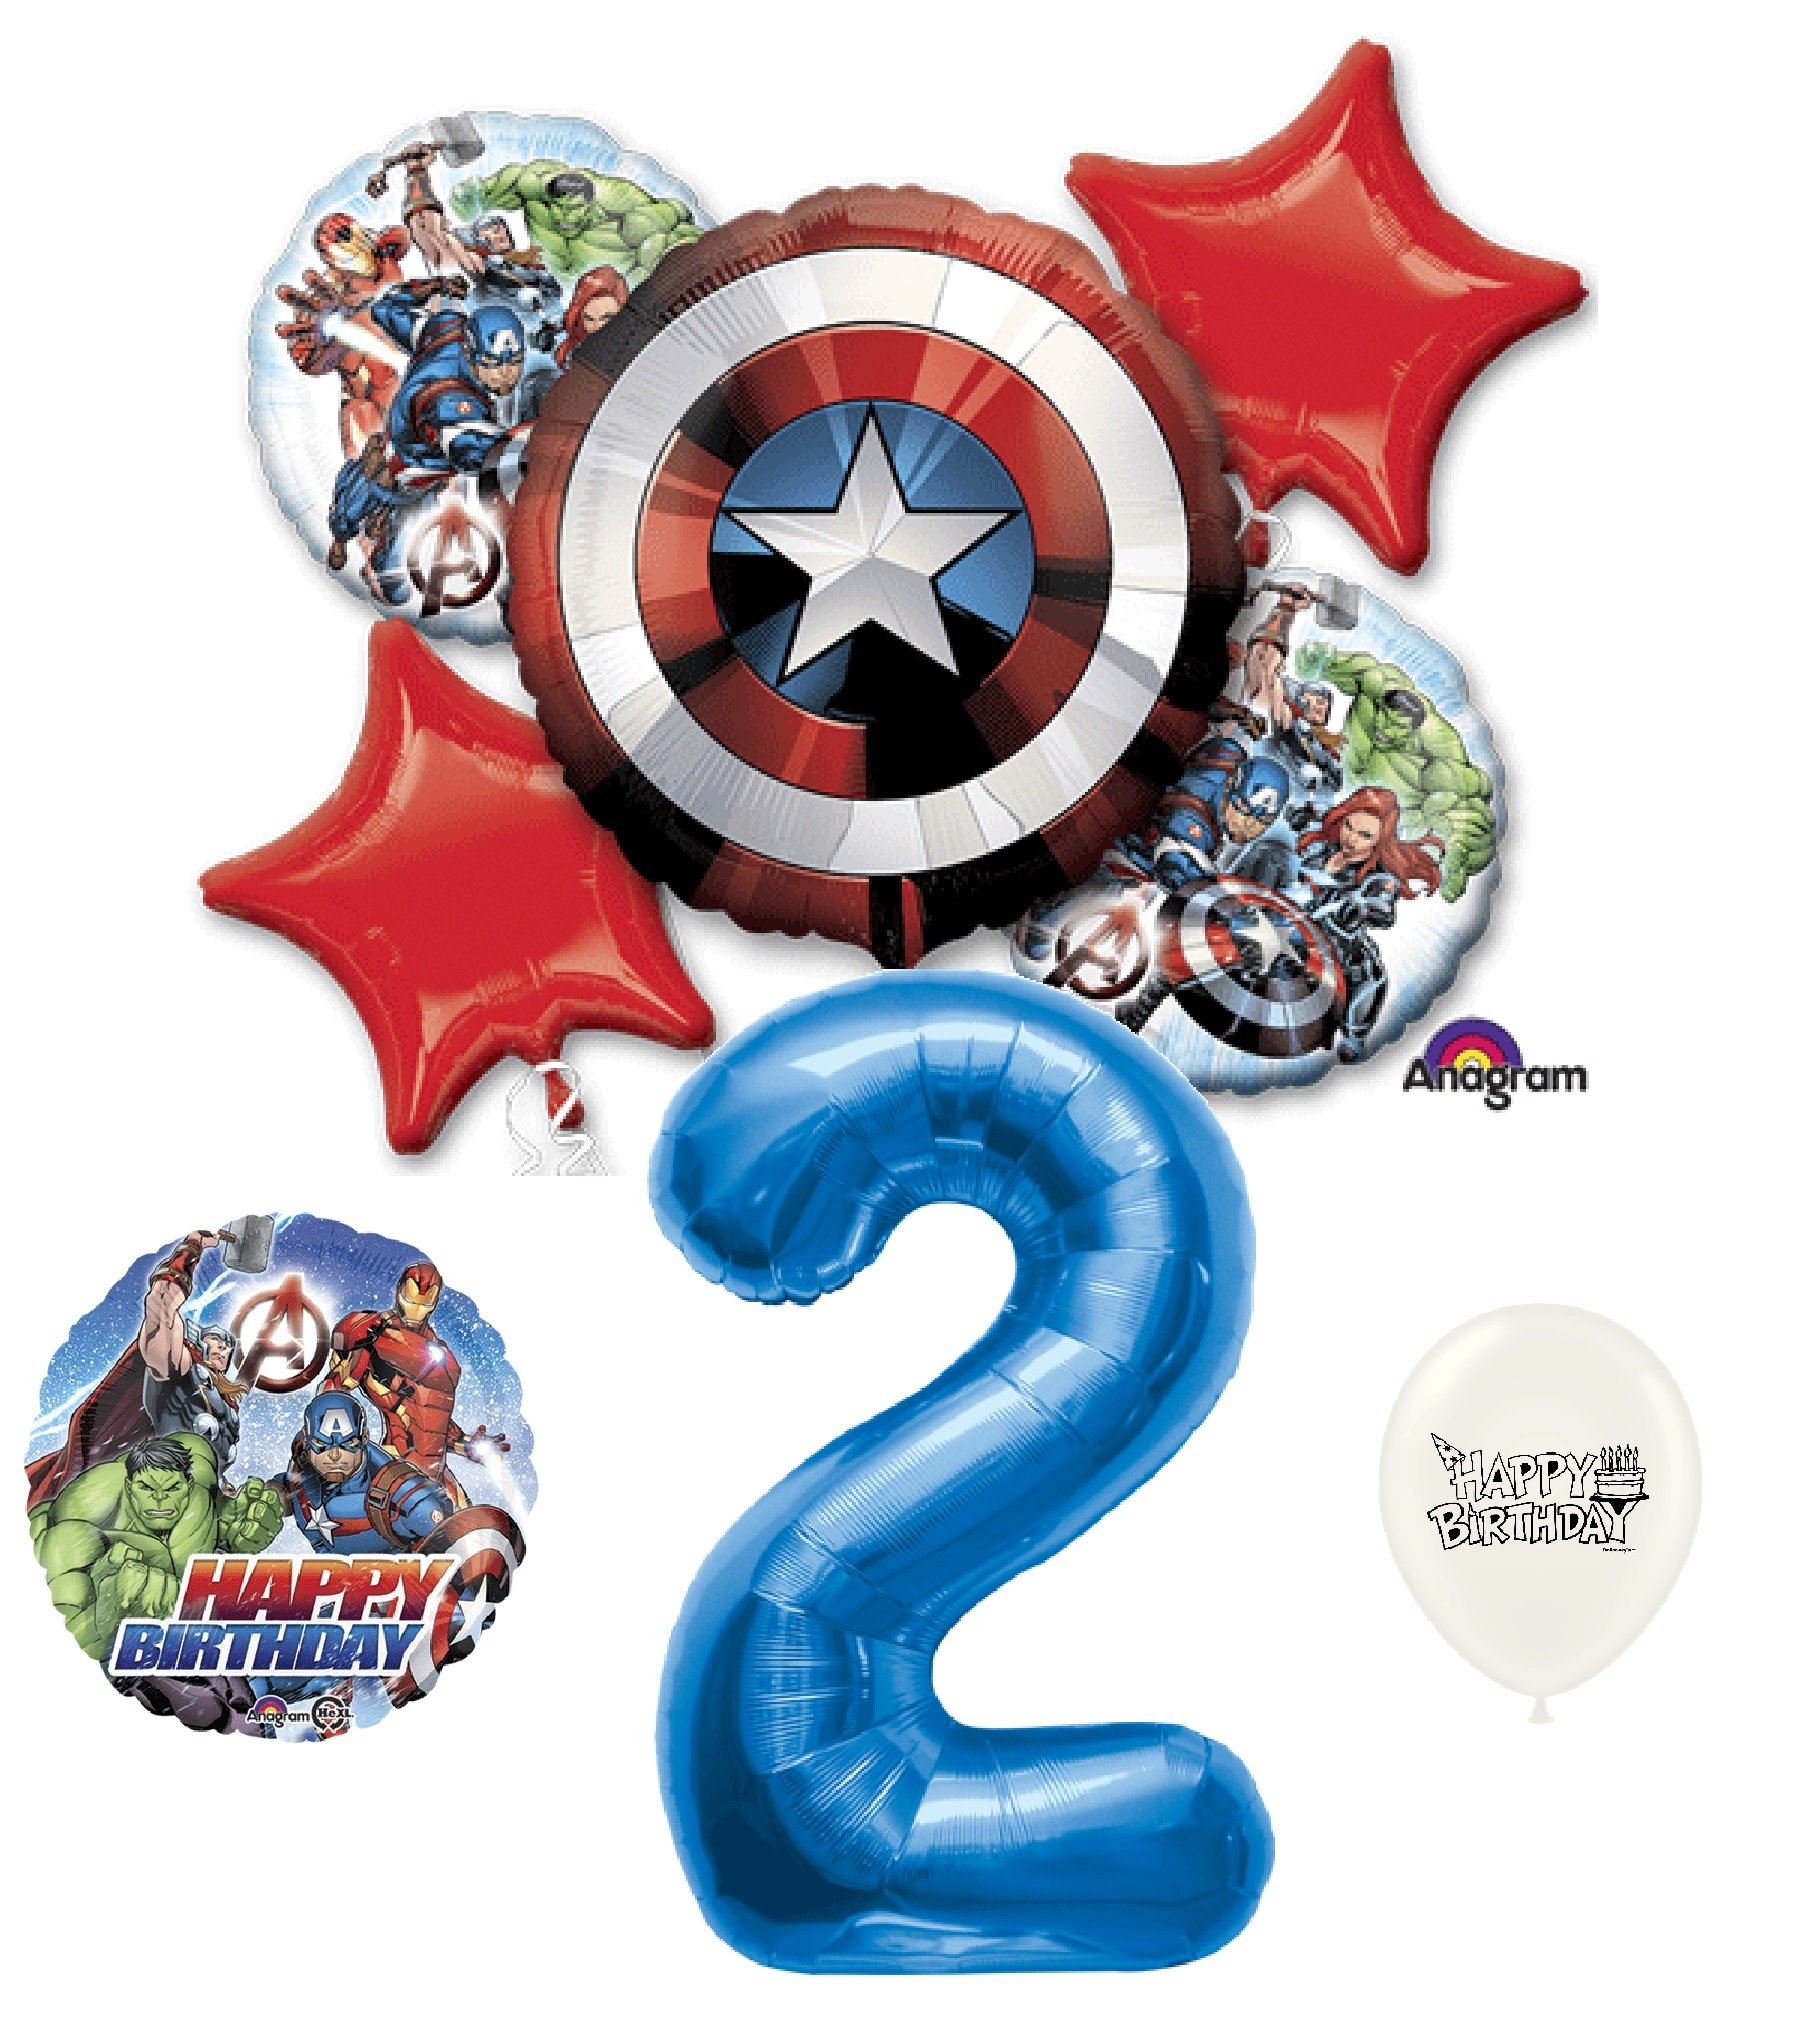 2nd Birthday Blue Number Avengers Captain America Shield Balloons Bouquet Bundle